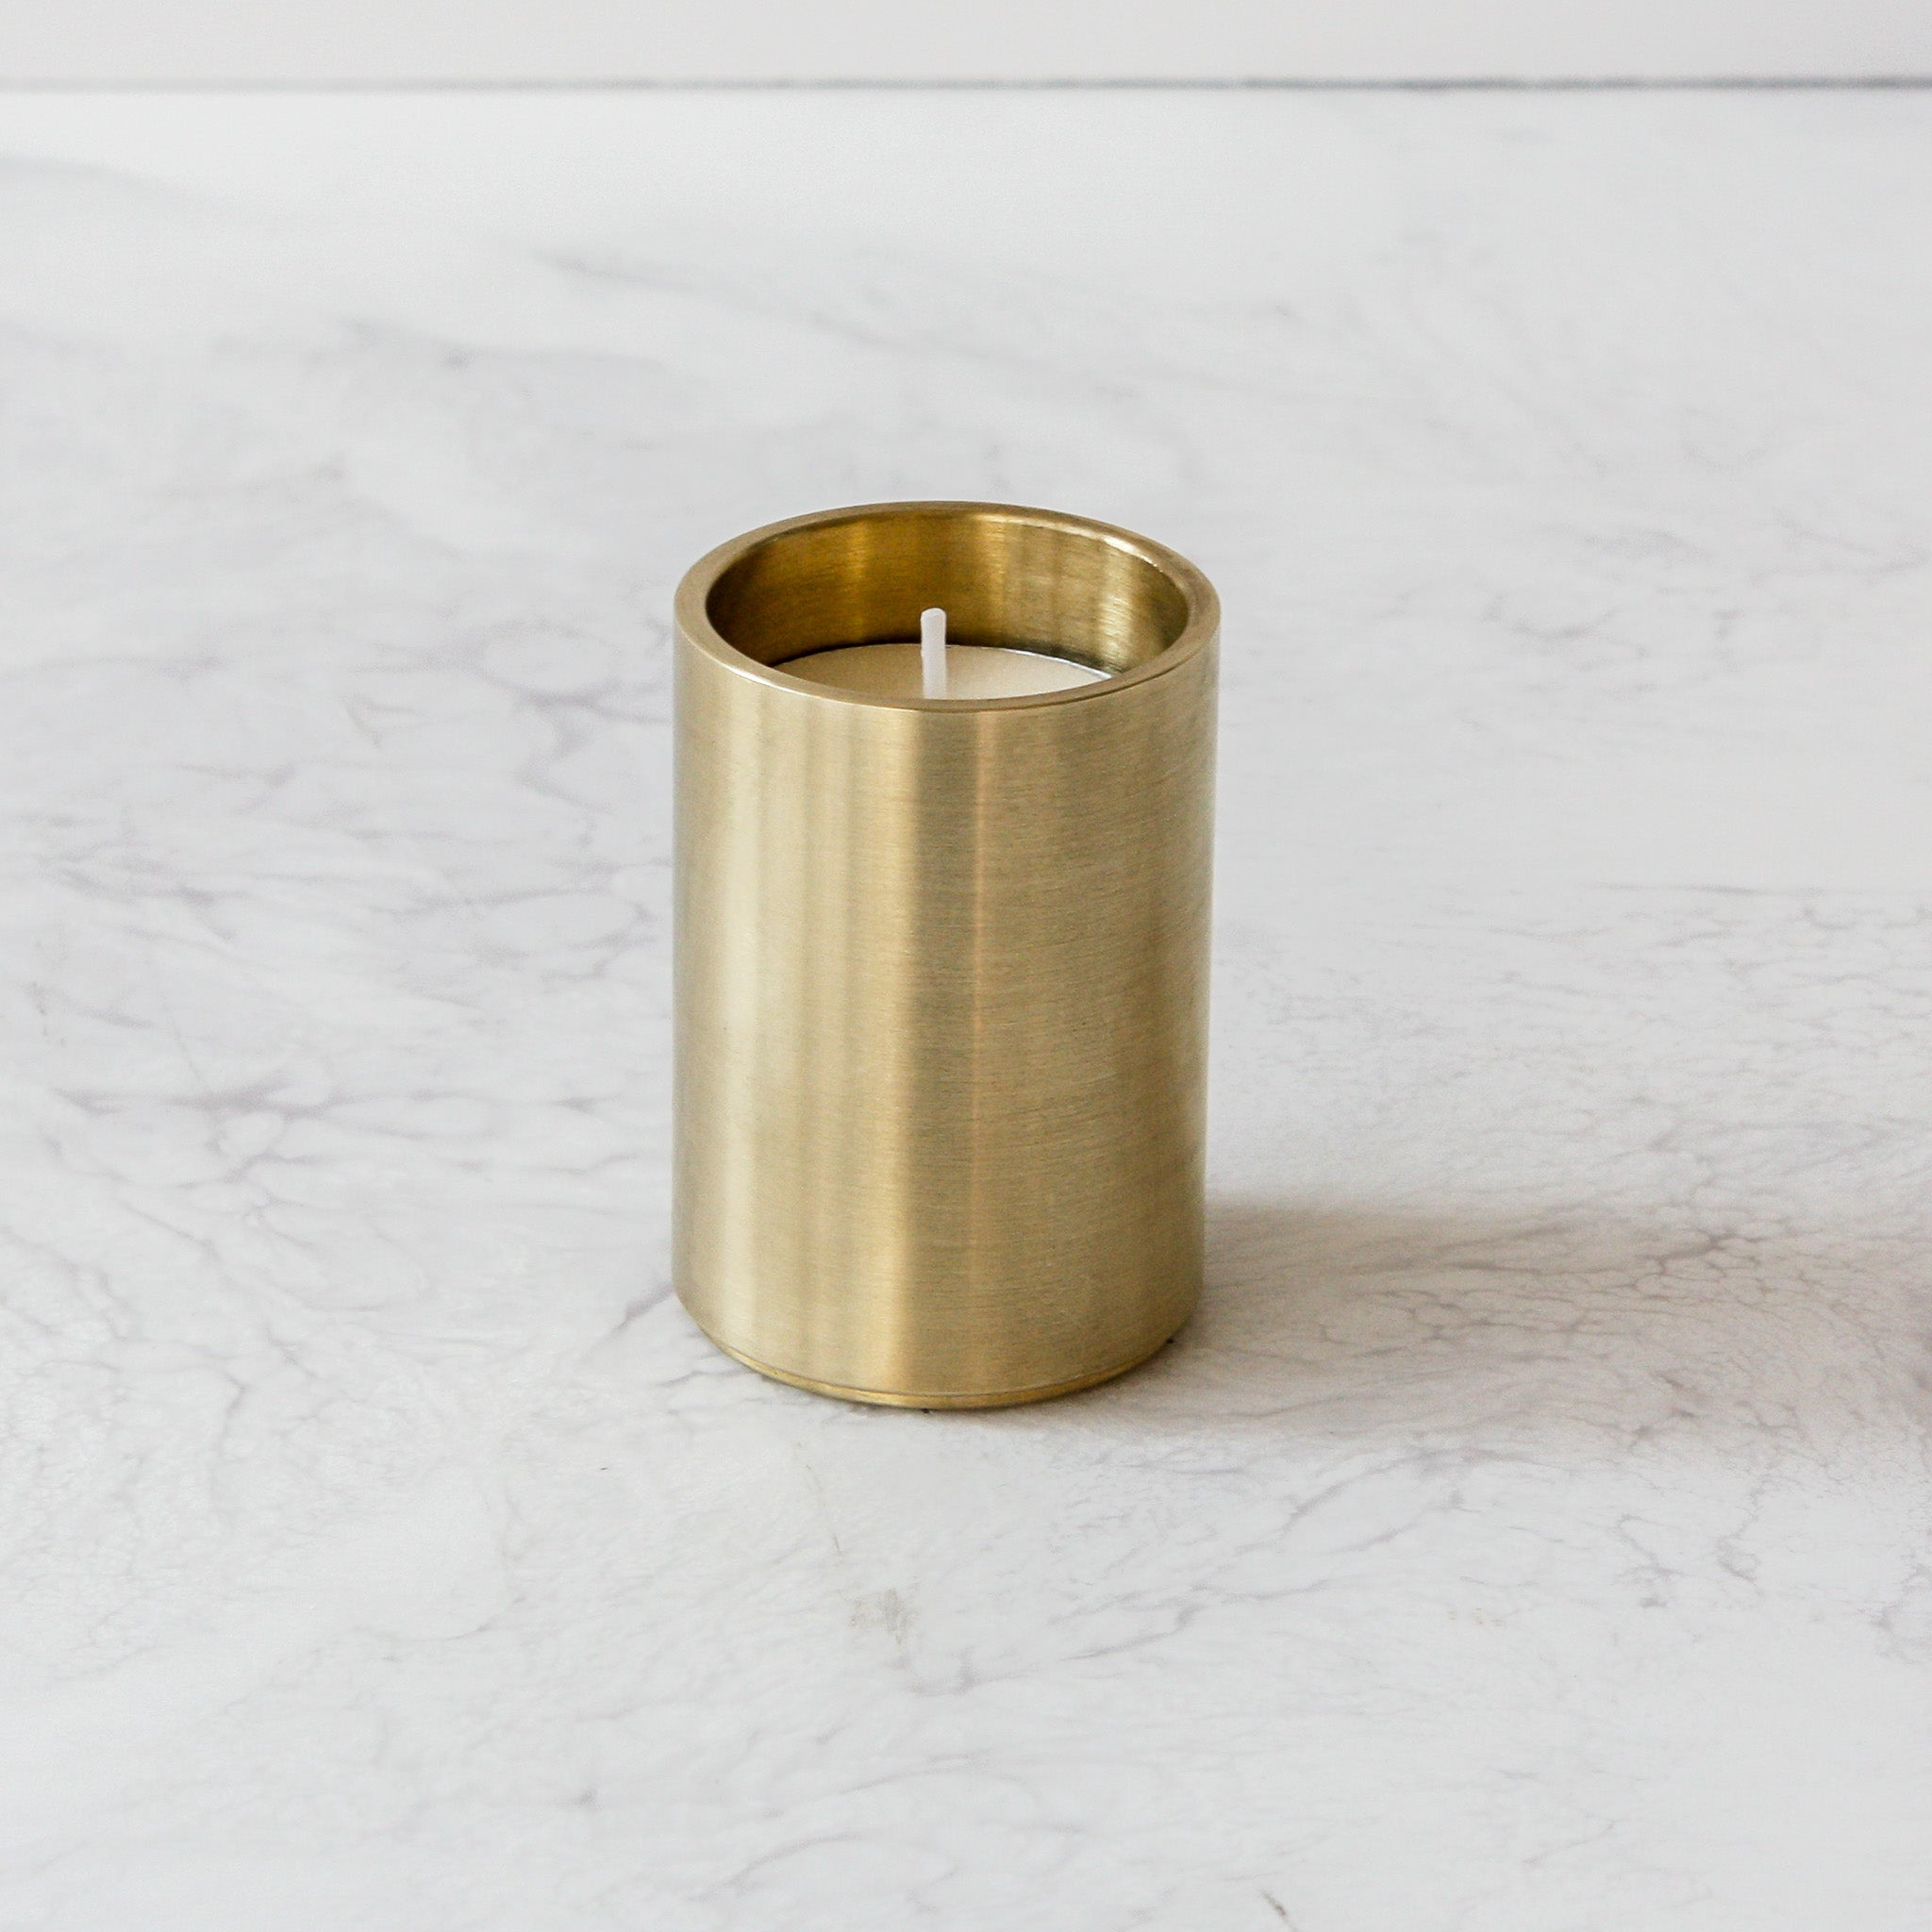 Solid Brass Round Tealight Votive